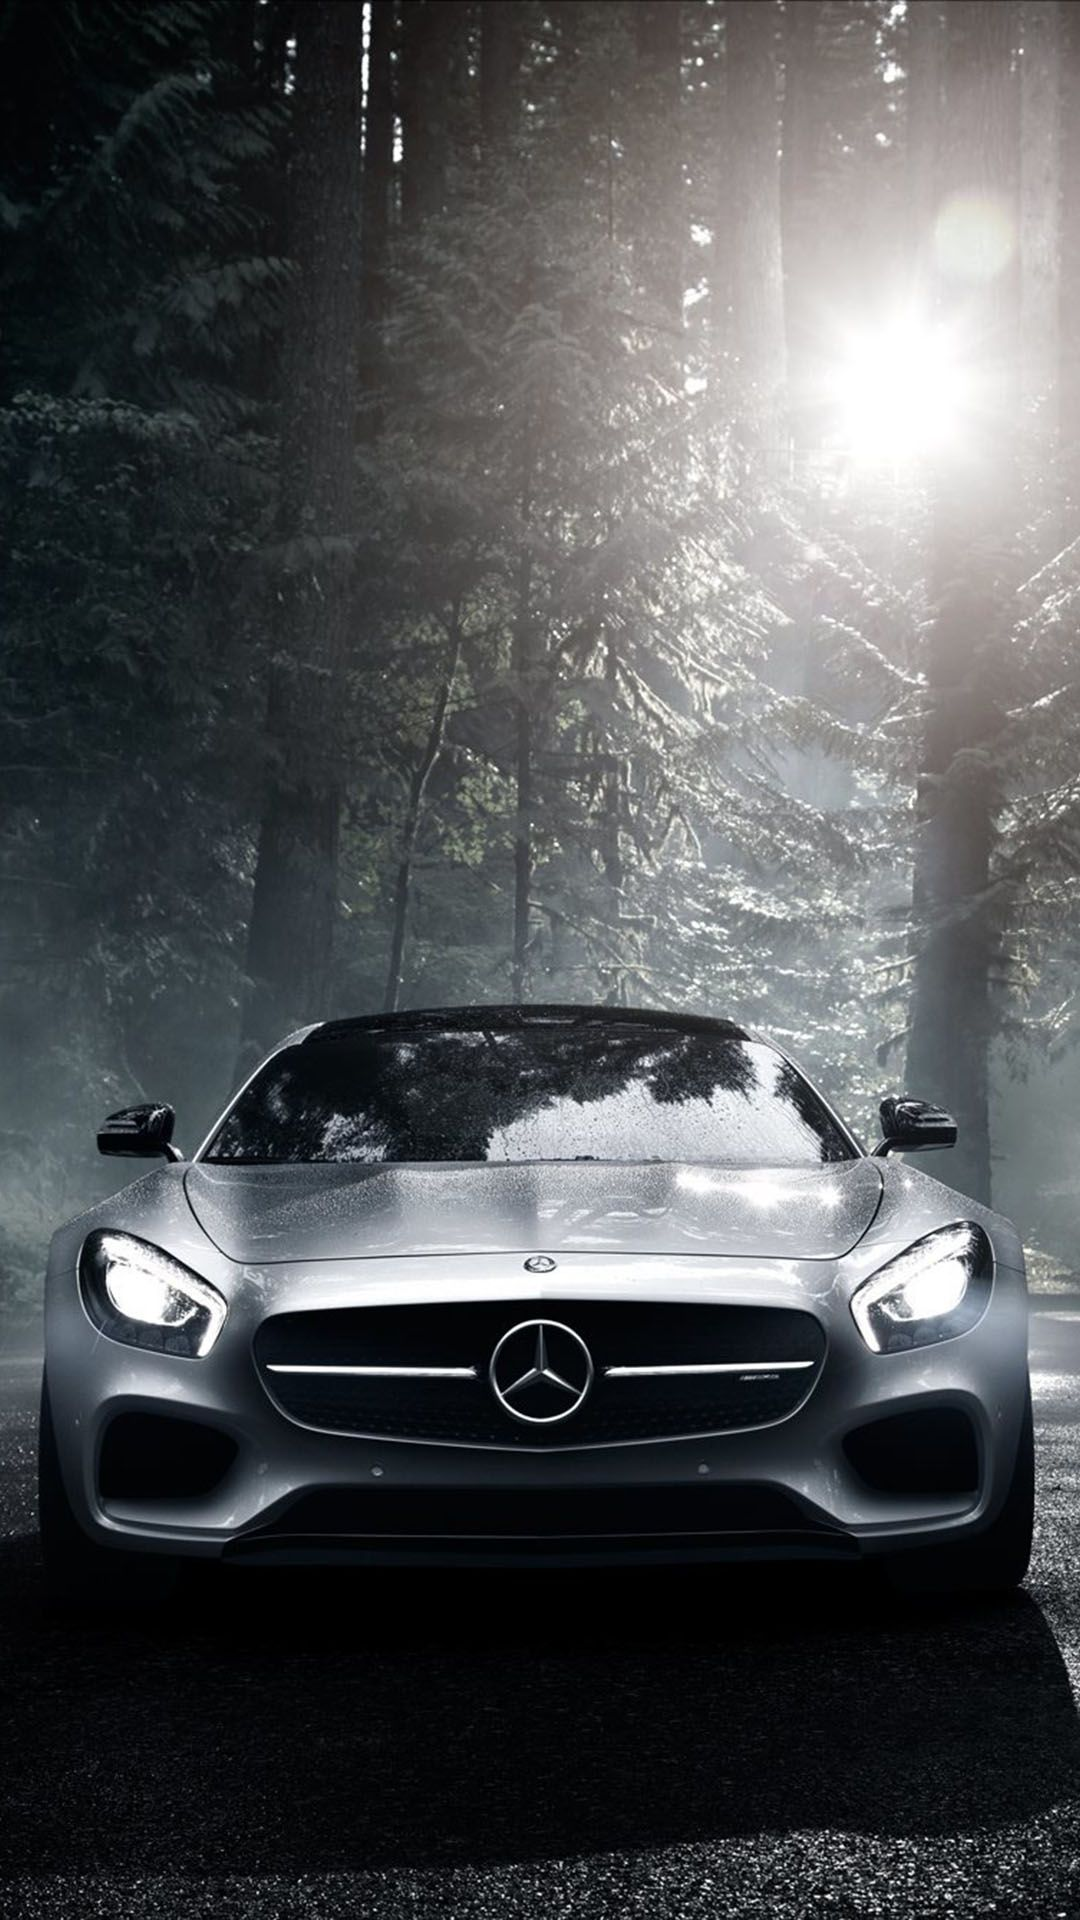 Best 4 Door Sports Cars In The World Best Pictures Cars Mercedes Wallpaper Mercedes Benz Wallpaper Mercedes Benz Amg